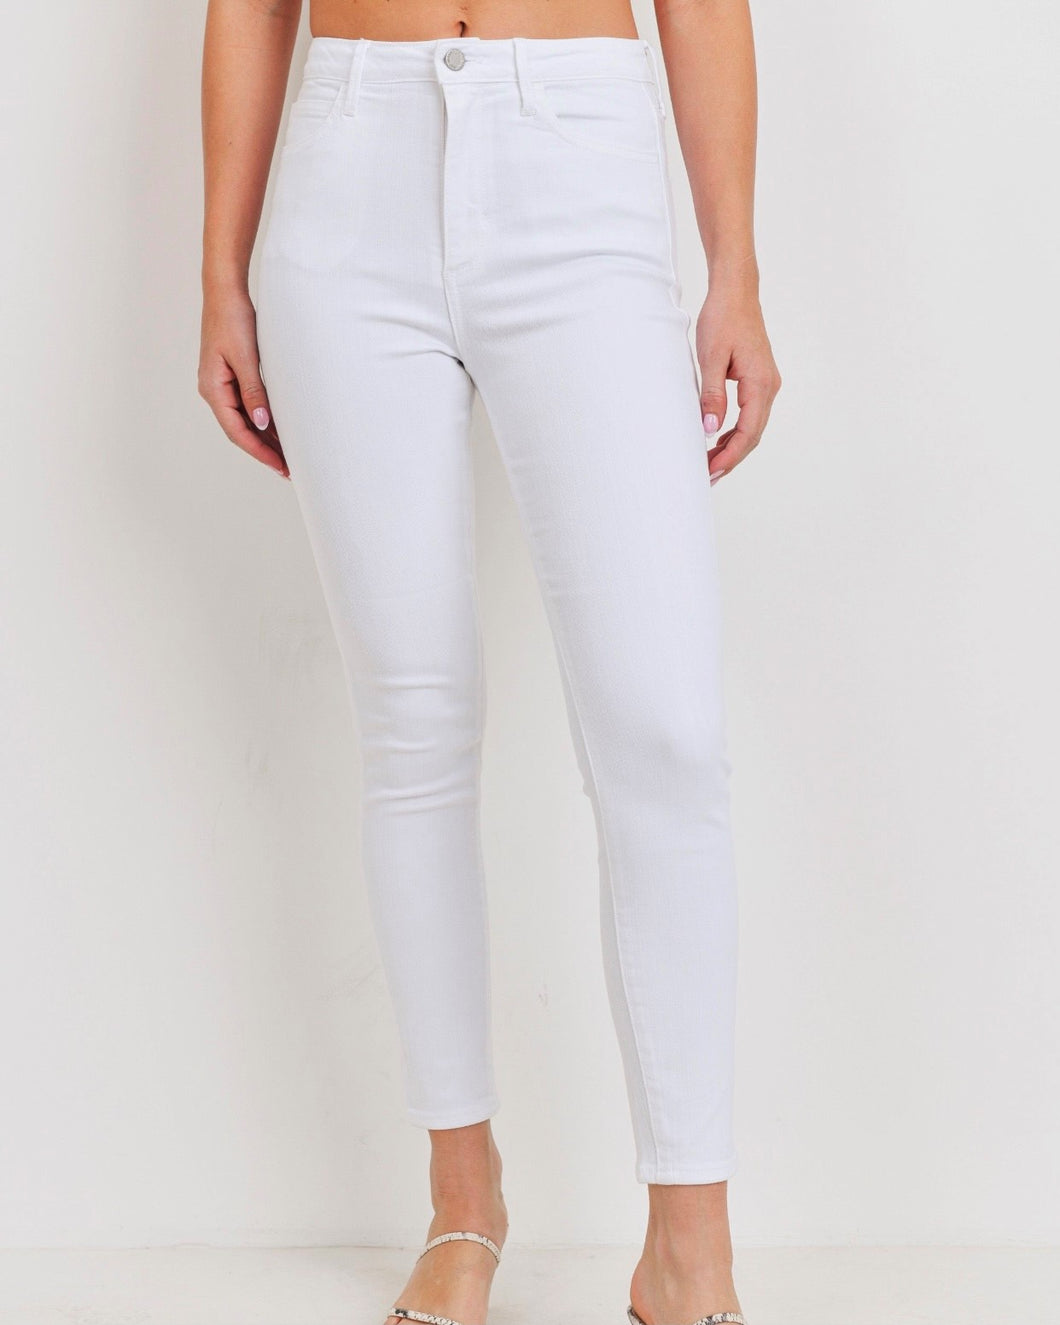 High Rise Classic Skinny Jeans- White